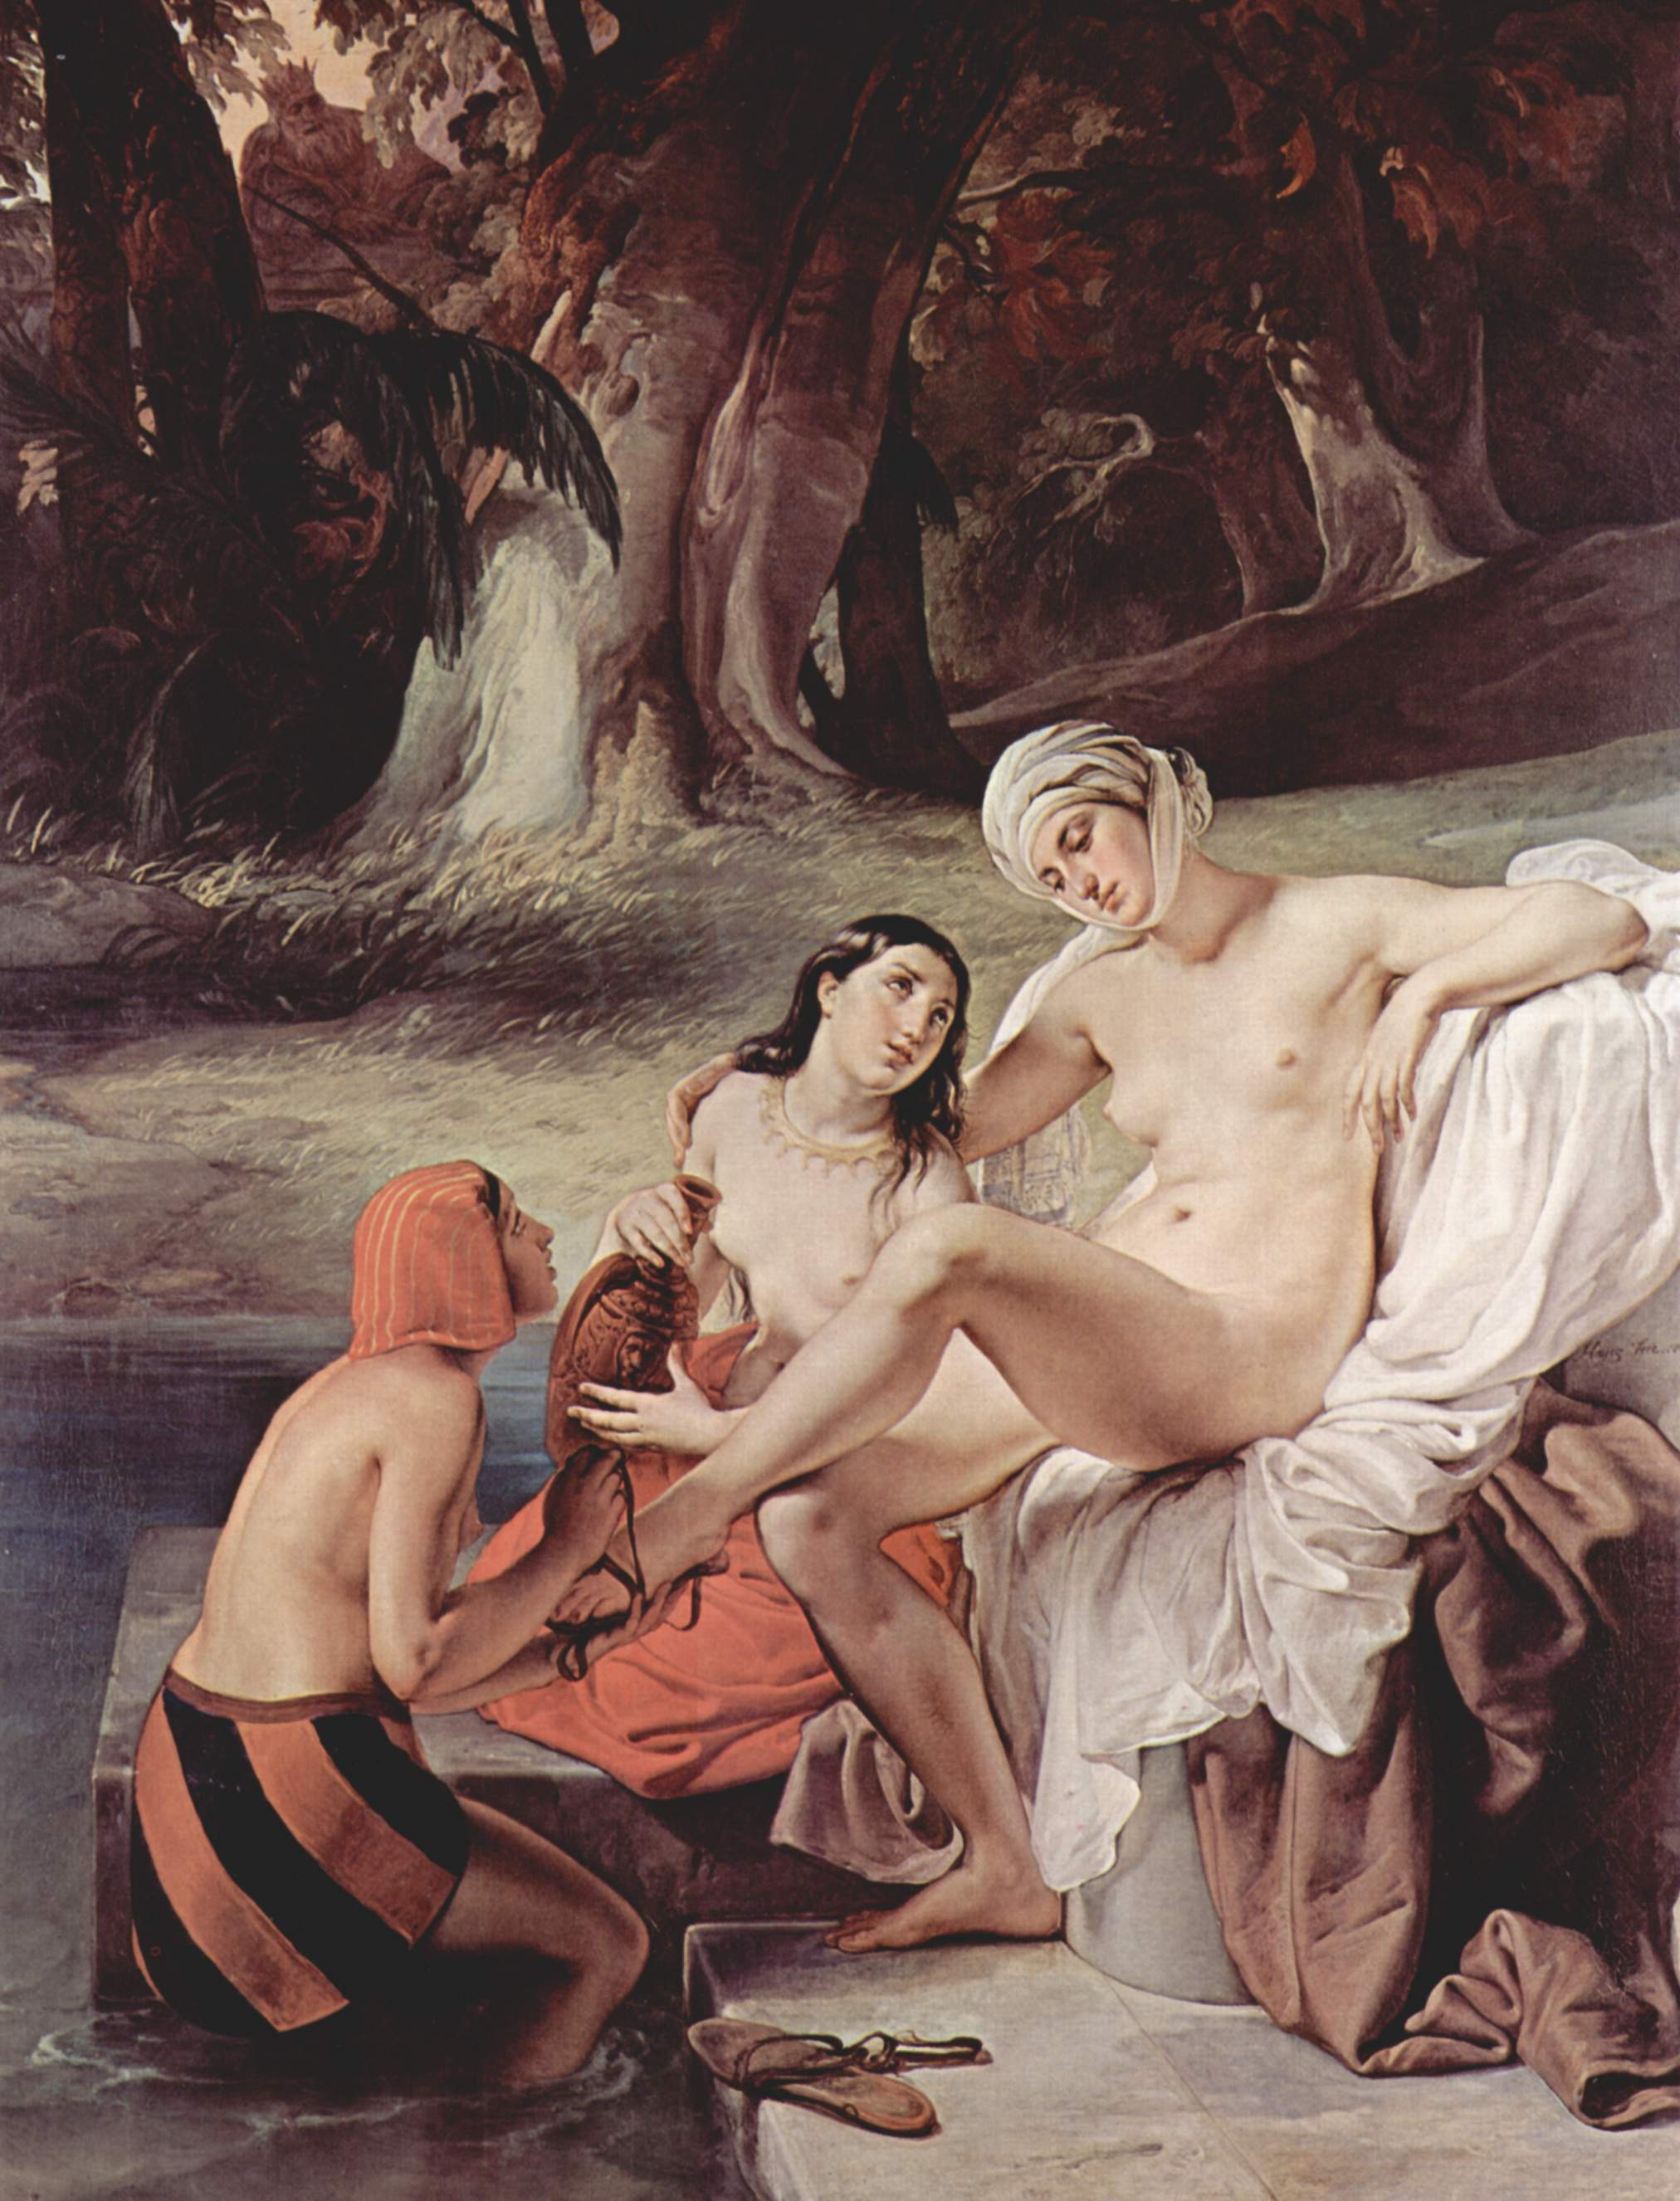 http://uploads8.wikipaintings.org/images/francesco-hayez/bathing-bathsheba-1834.jpg